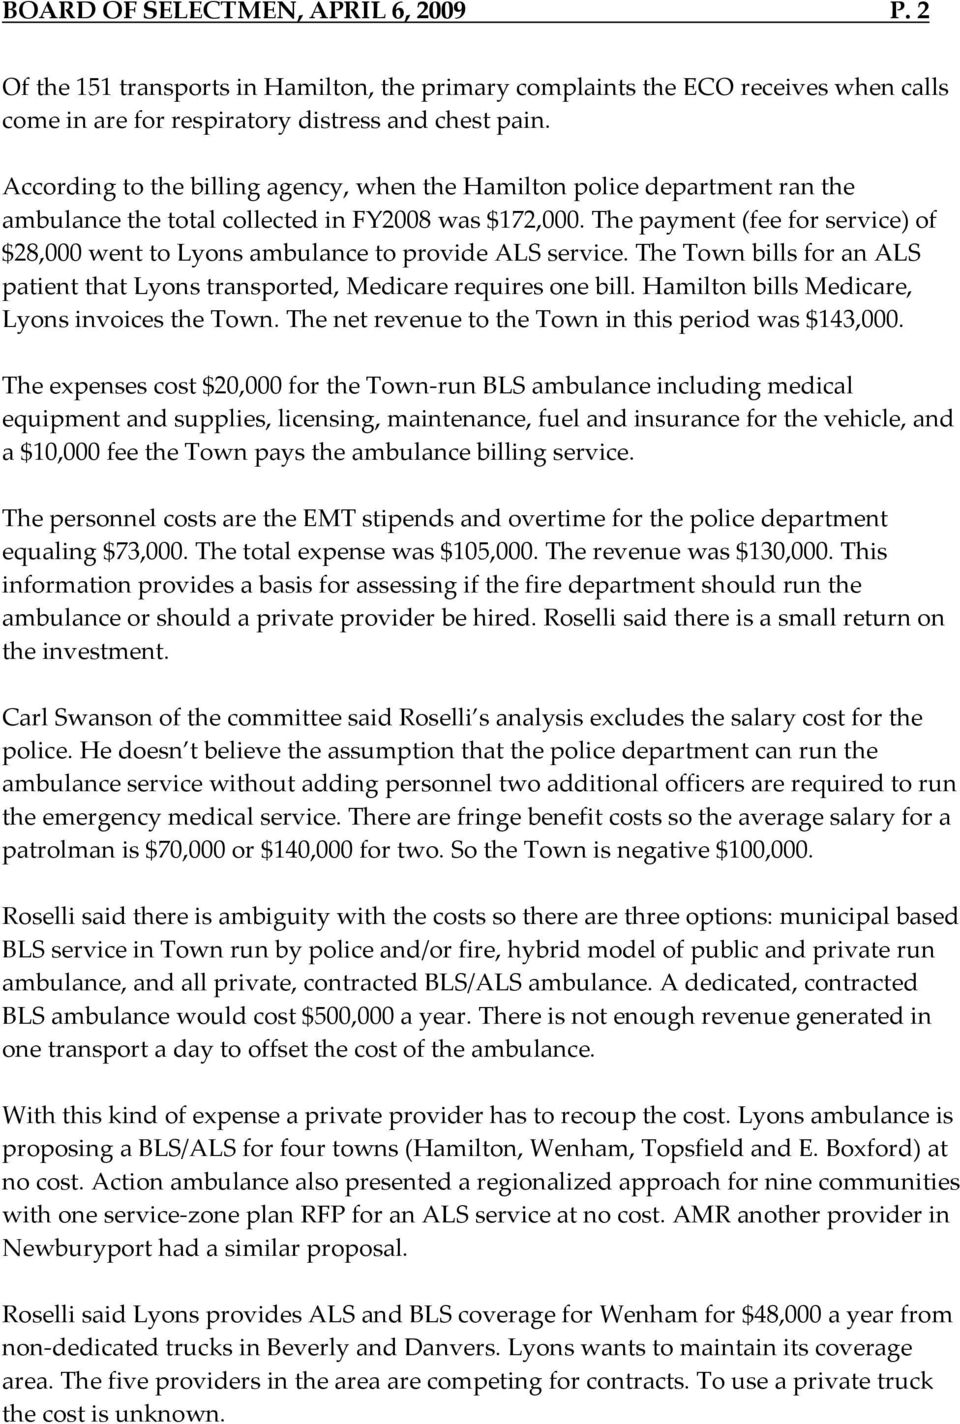 The payment (fee for service) of $28,000 went to Lyons ambulance to provide ALS service. The Town bills for an ALS patient that Lyons transported, Medicare requires one bill.